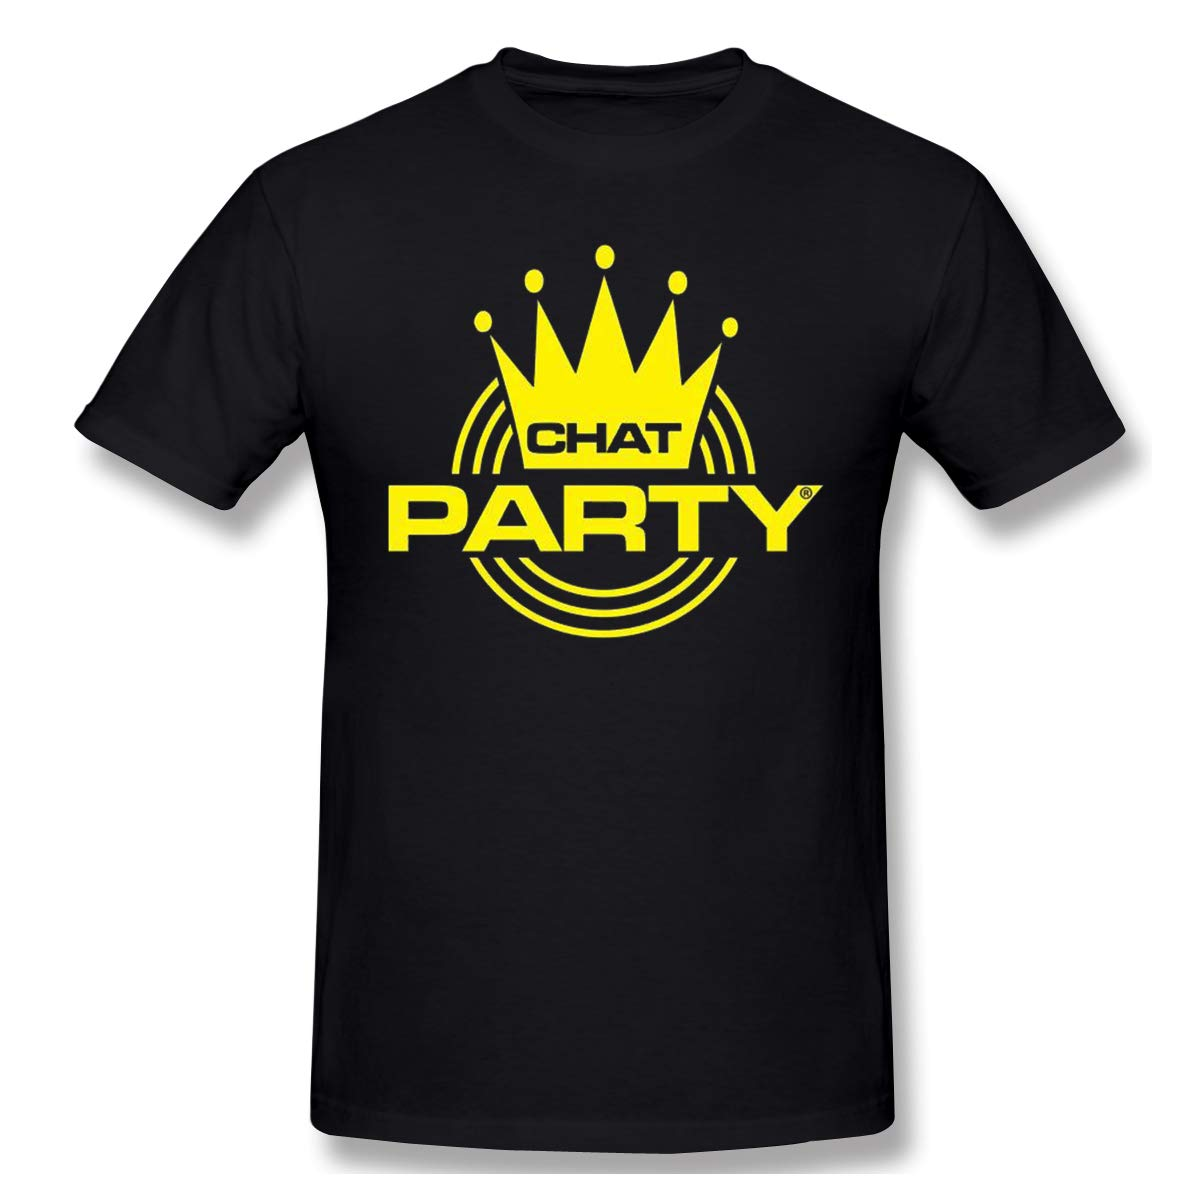 Chatparty Cool Black With Short Sleeve Shirts